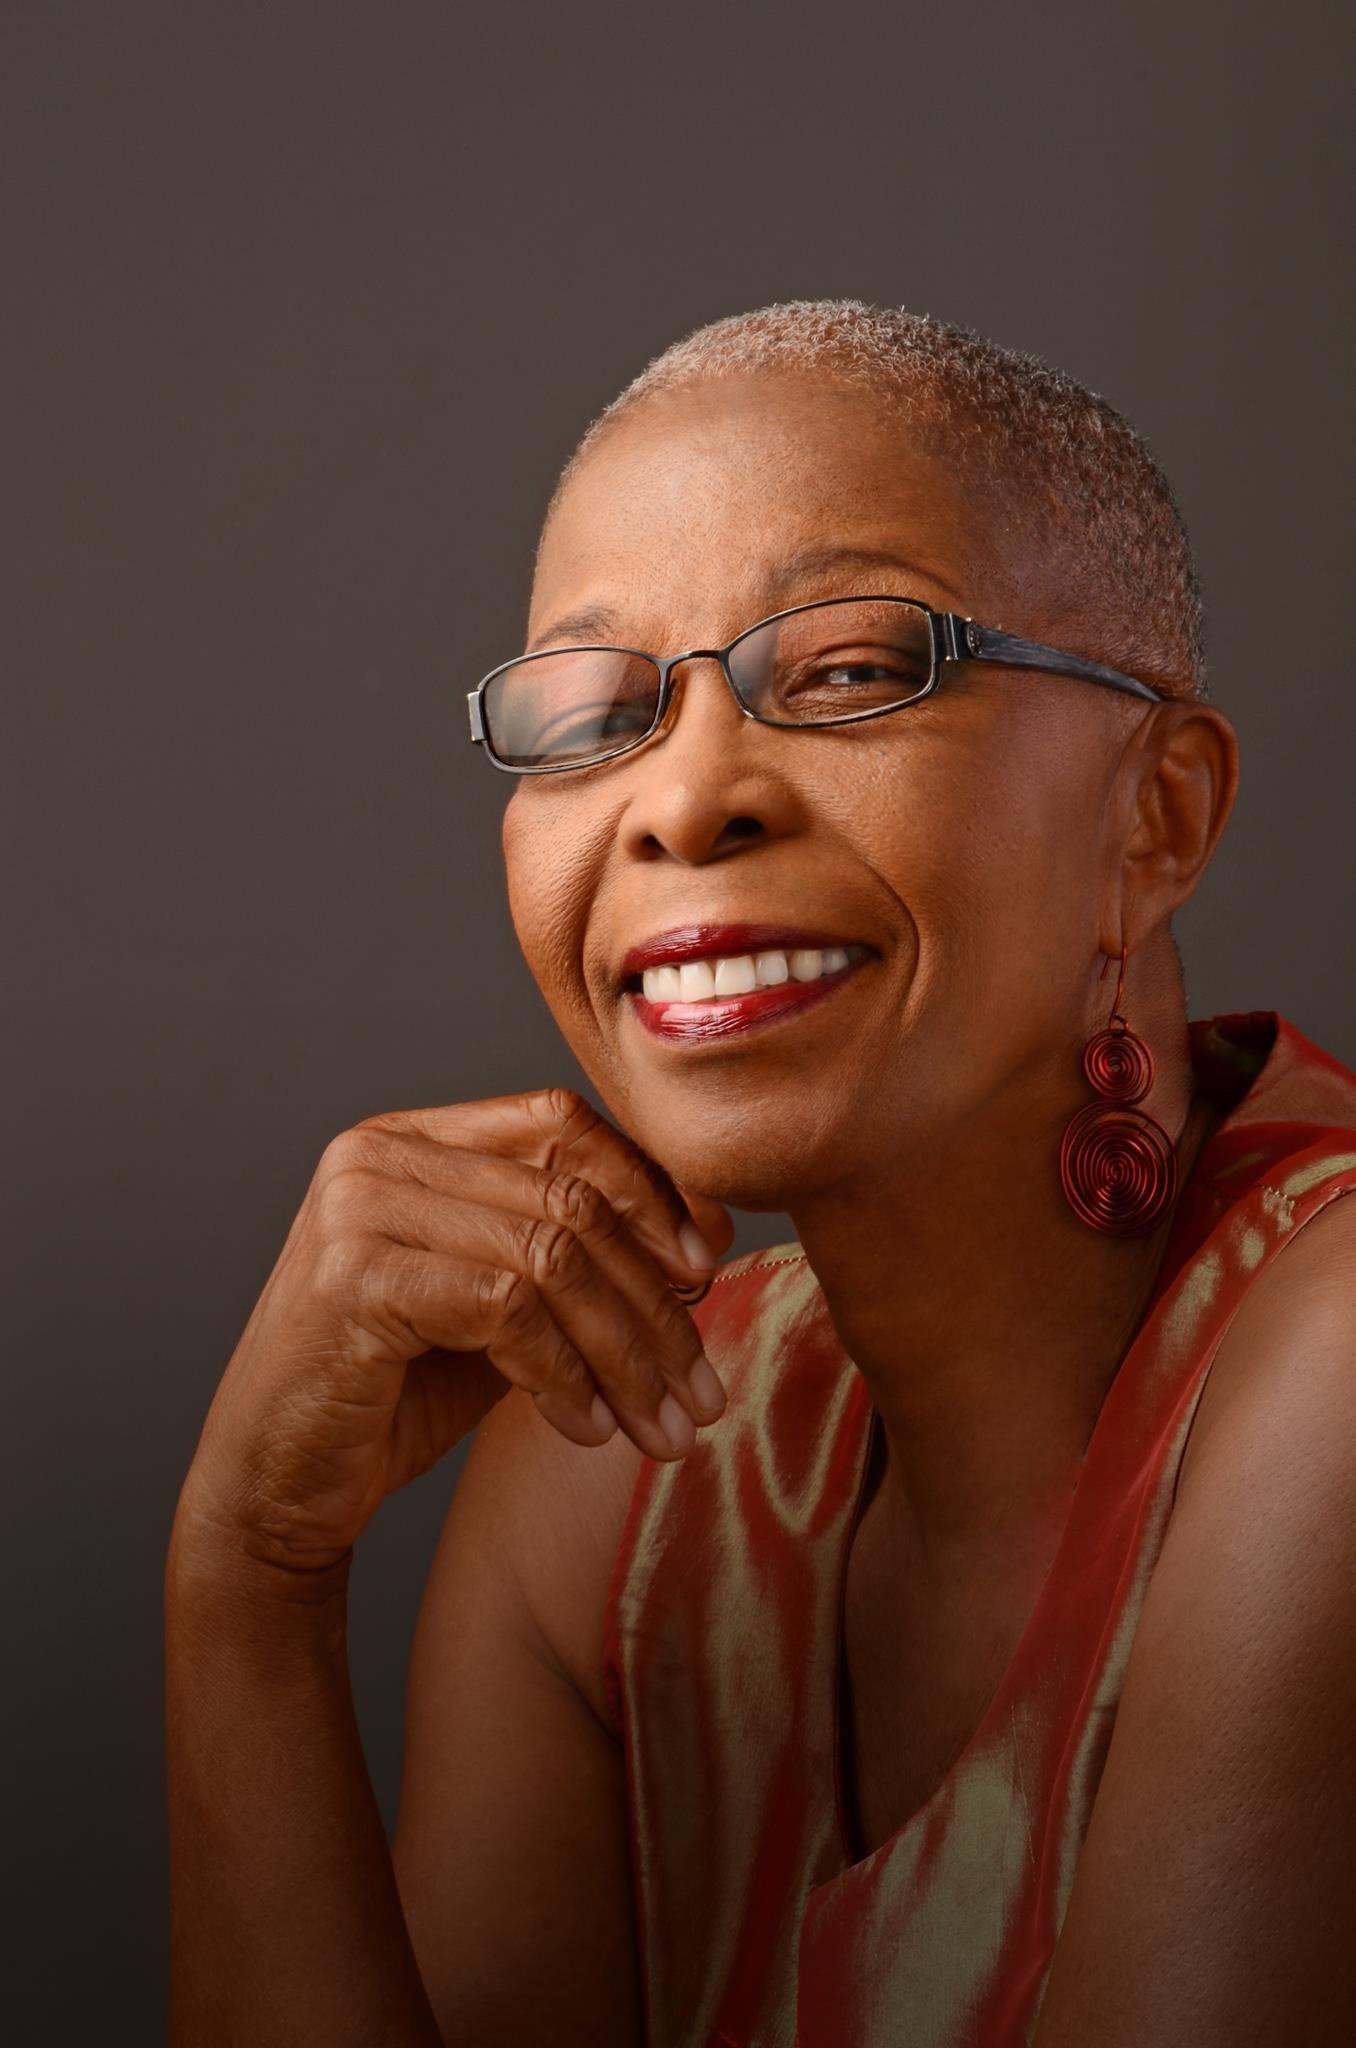 9th annual patricia charles memorial lecture Ms Esther Phillips - Poet Laureate of Barbados The Poet as Seer: An Examination of the Poet's Role in the Society.